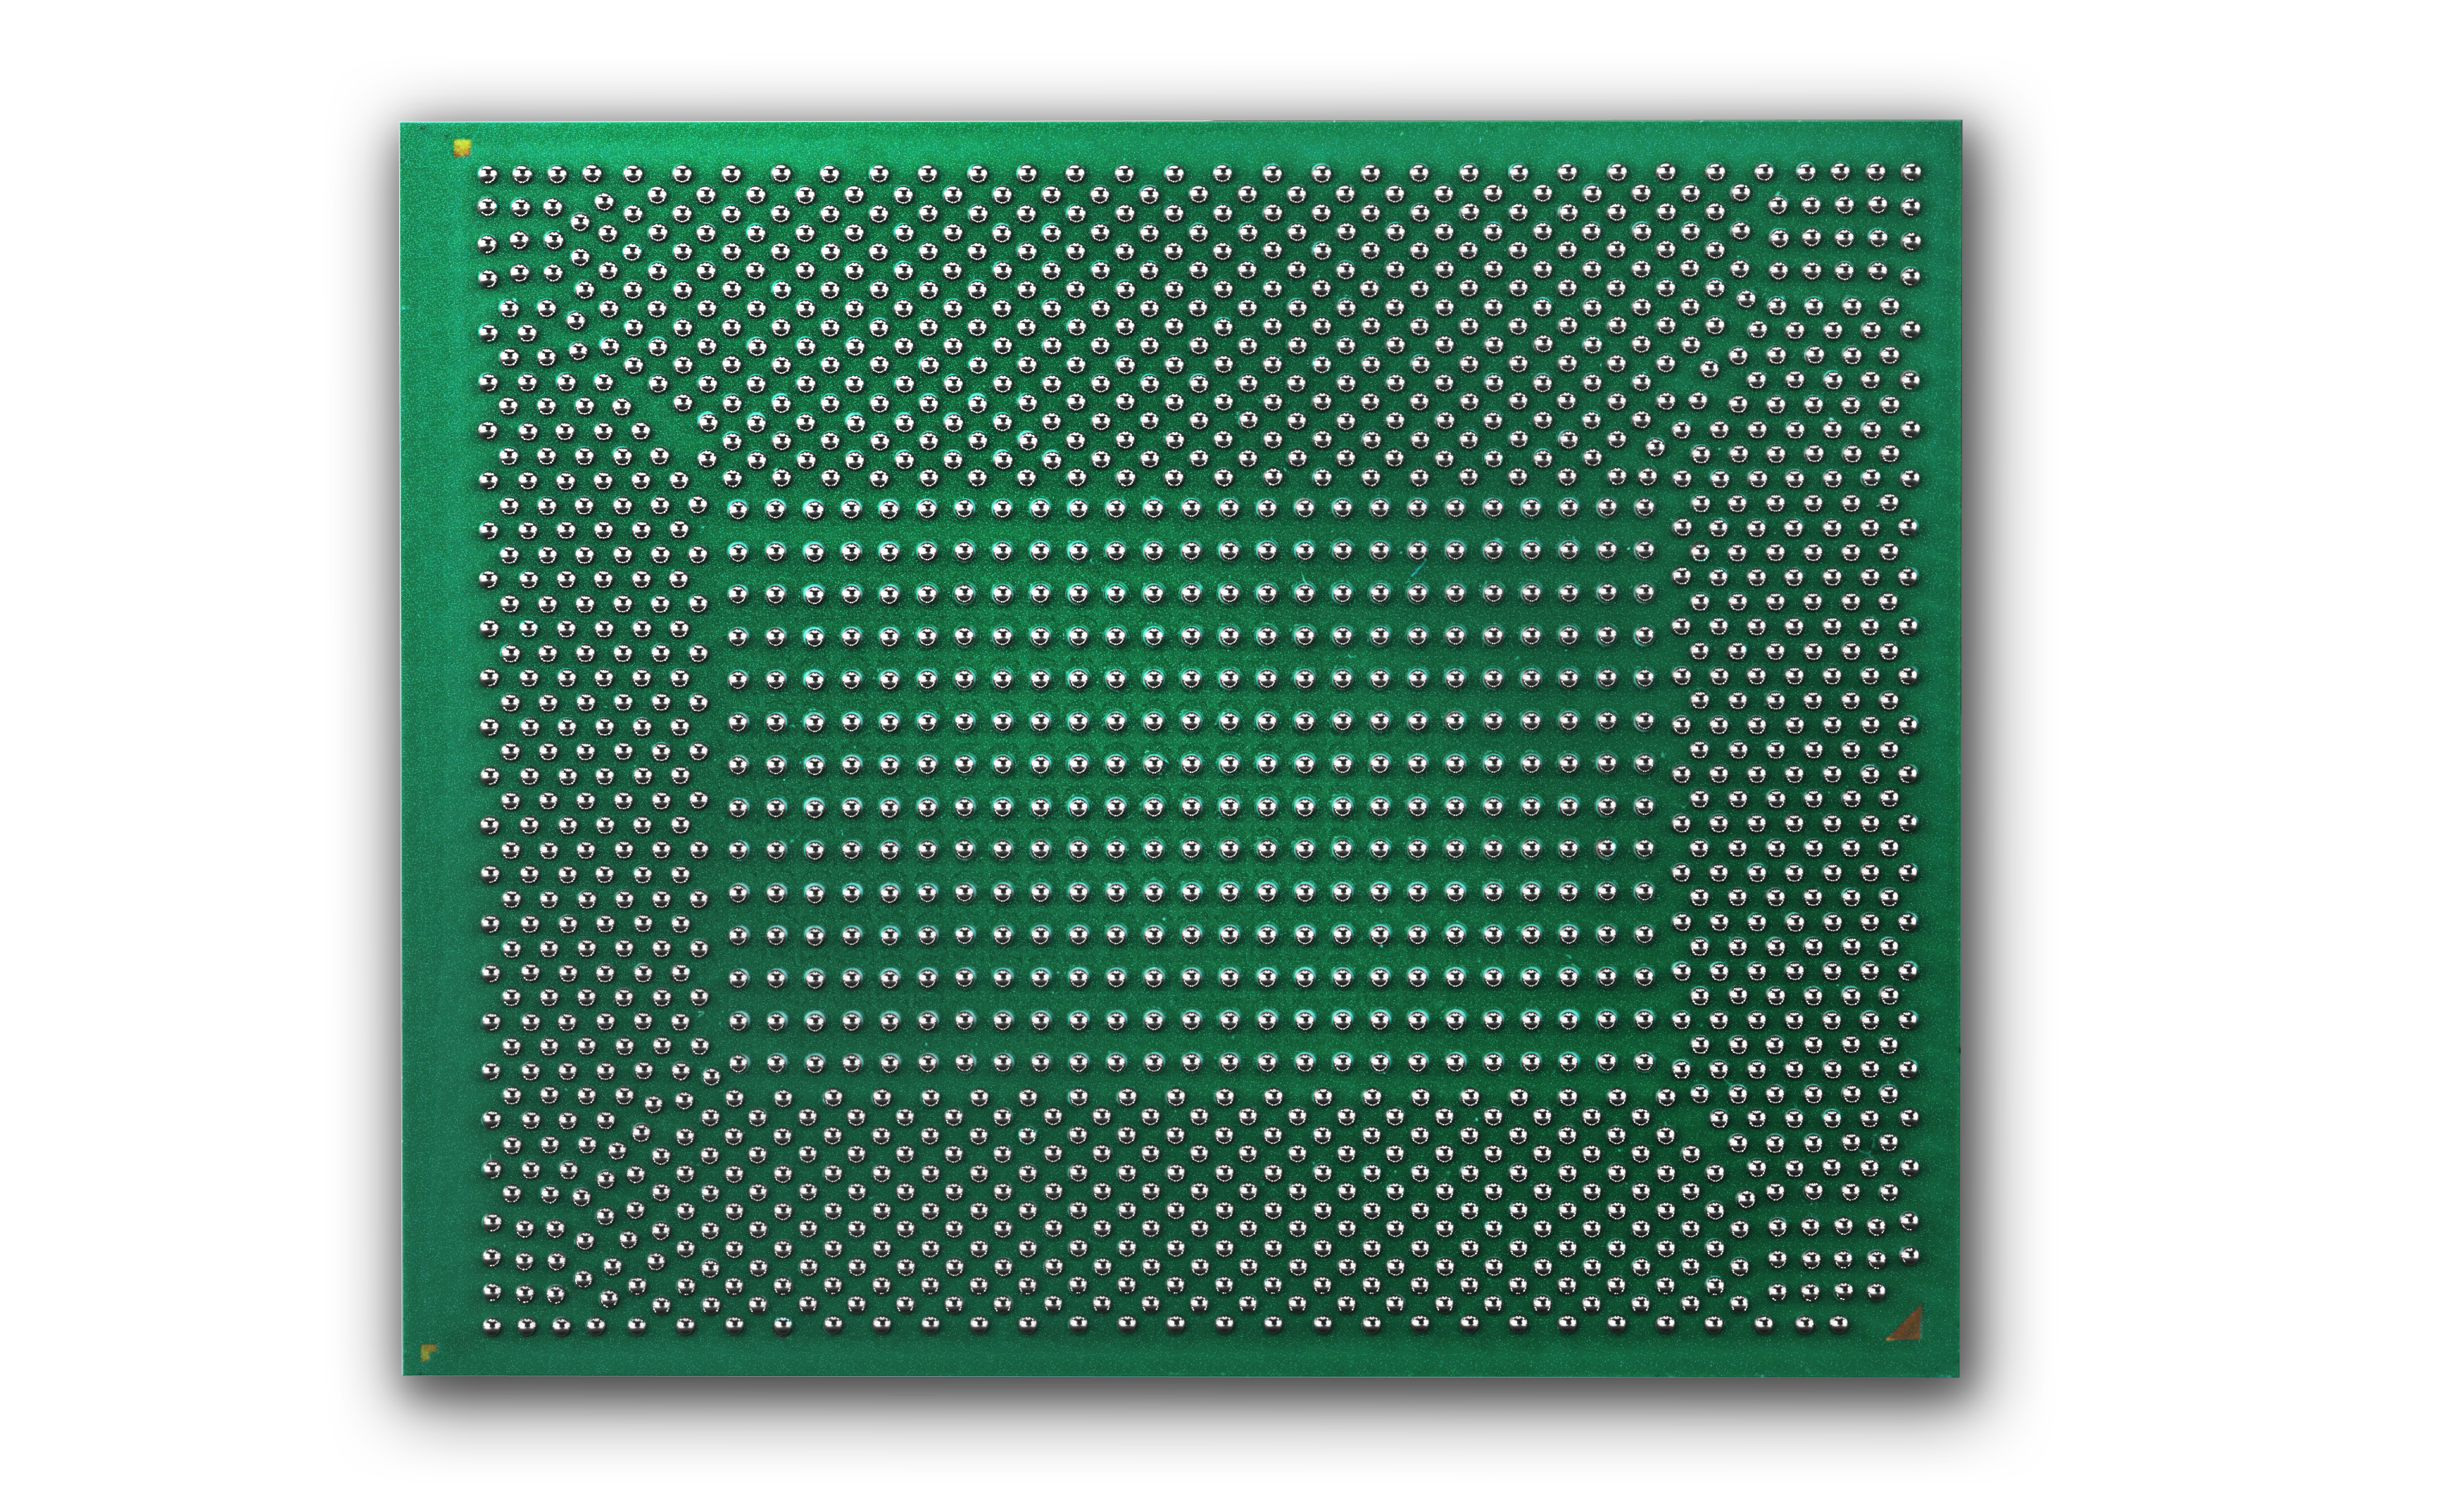 7th Gen Intel Core Y-series back